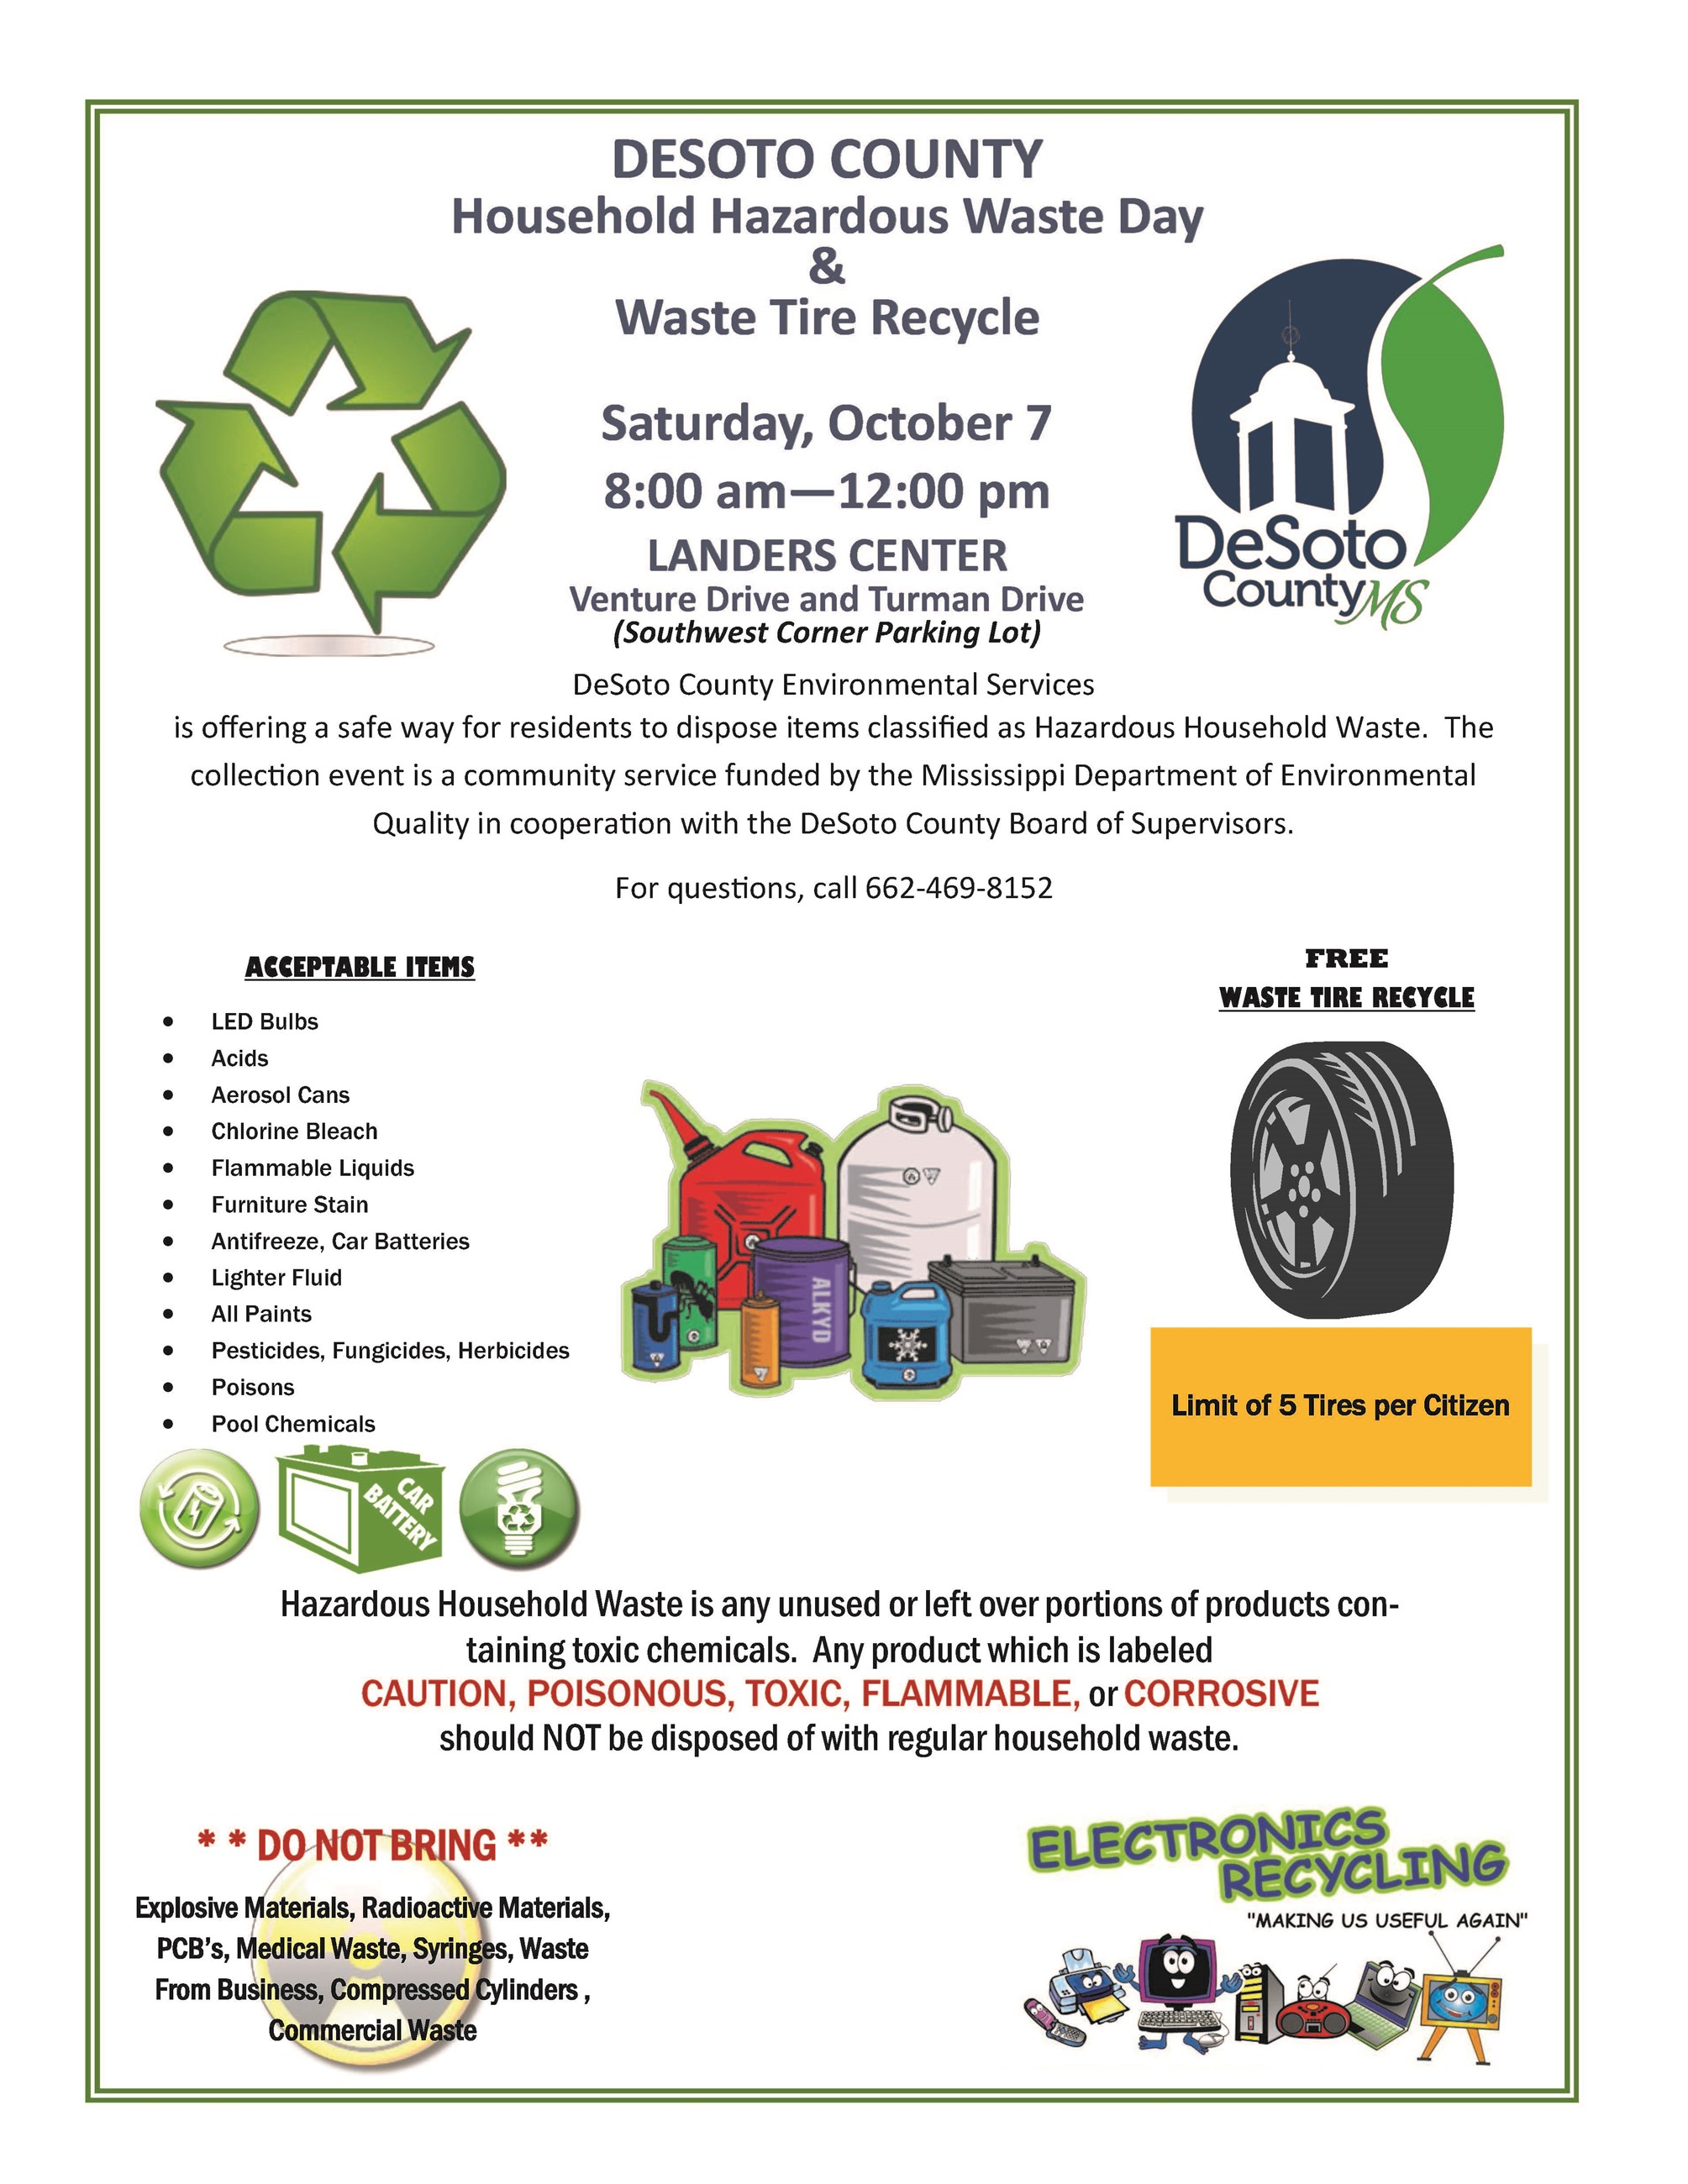 HAZARDOUS HOUSEHOLD WASTE DAY 2017 FLYER